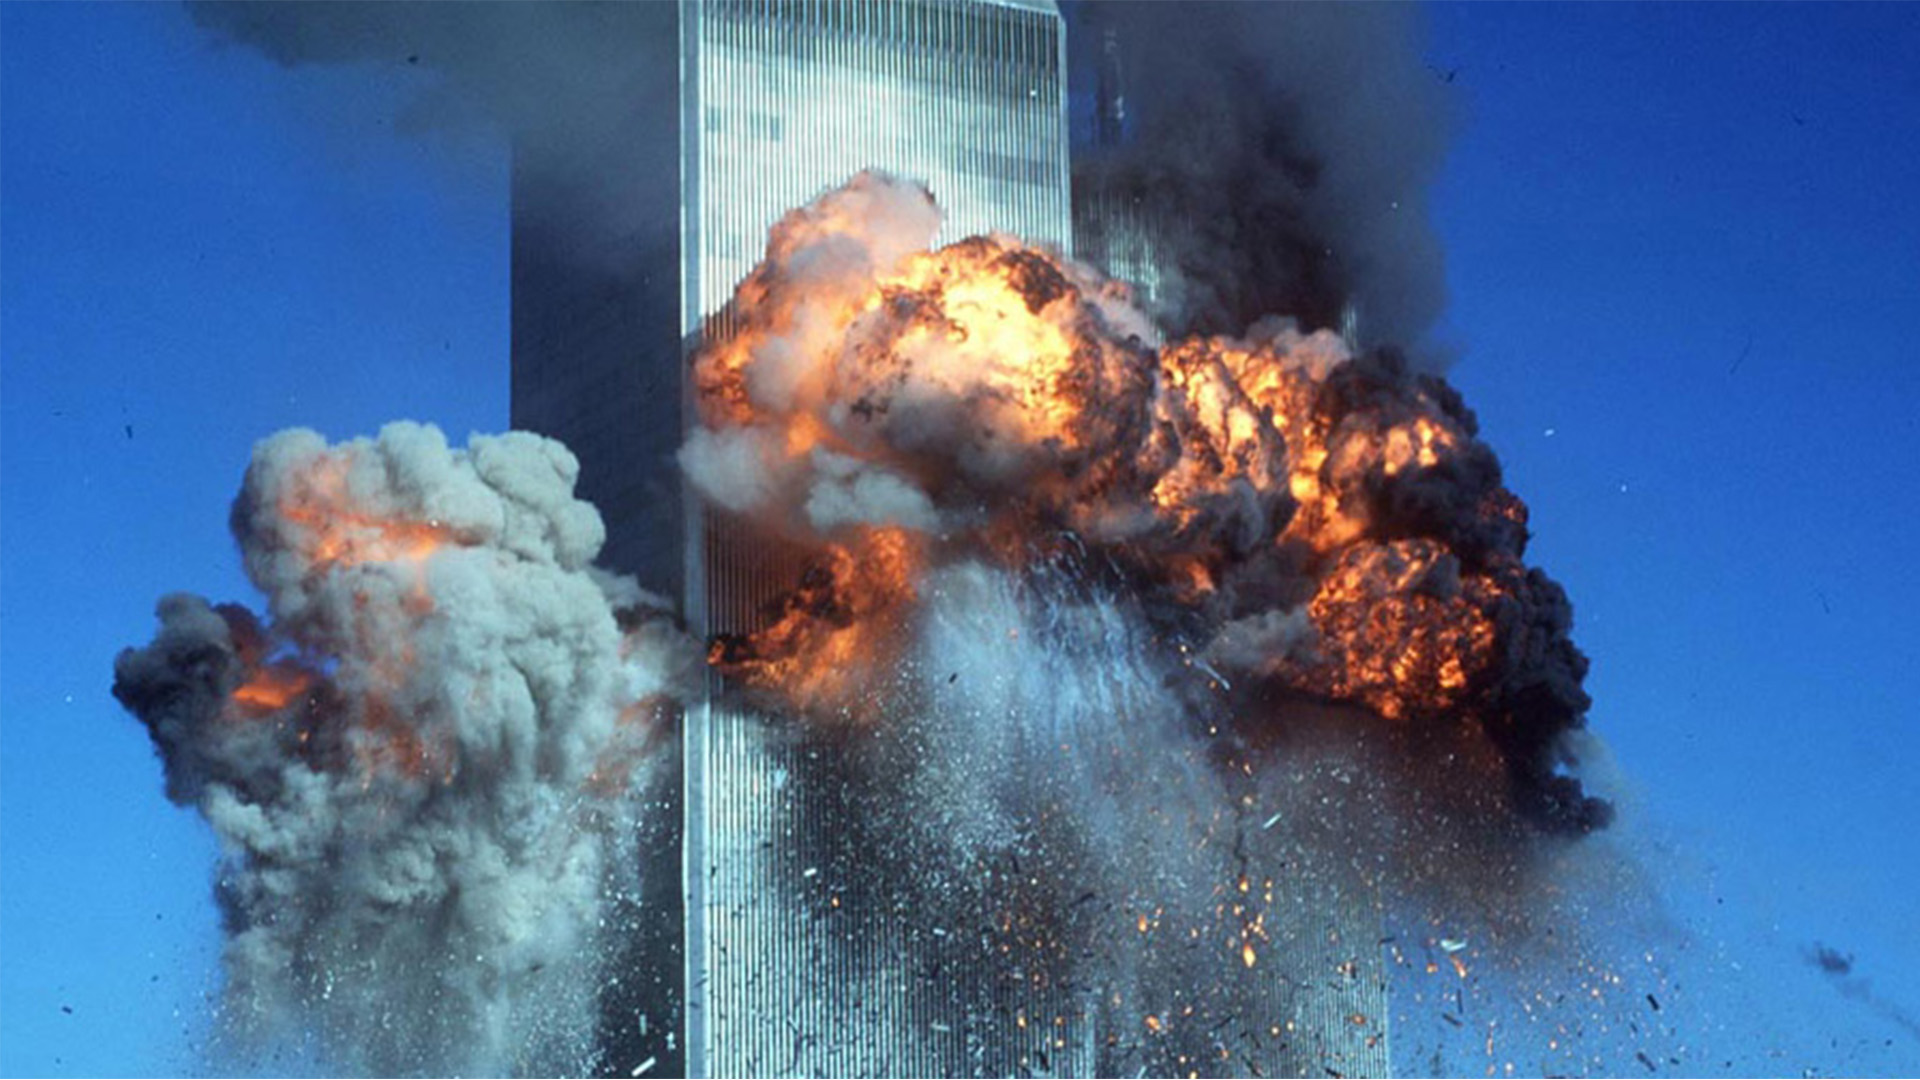 9 11 gruesome pictures